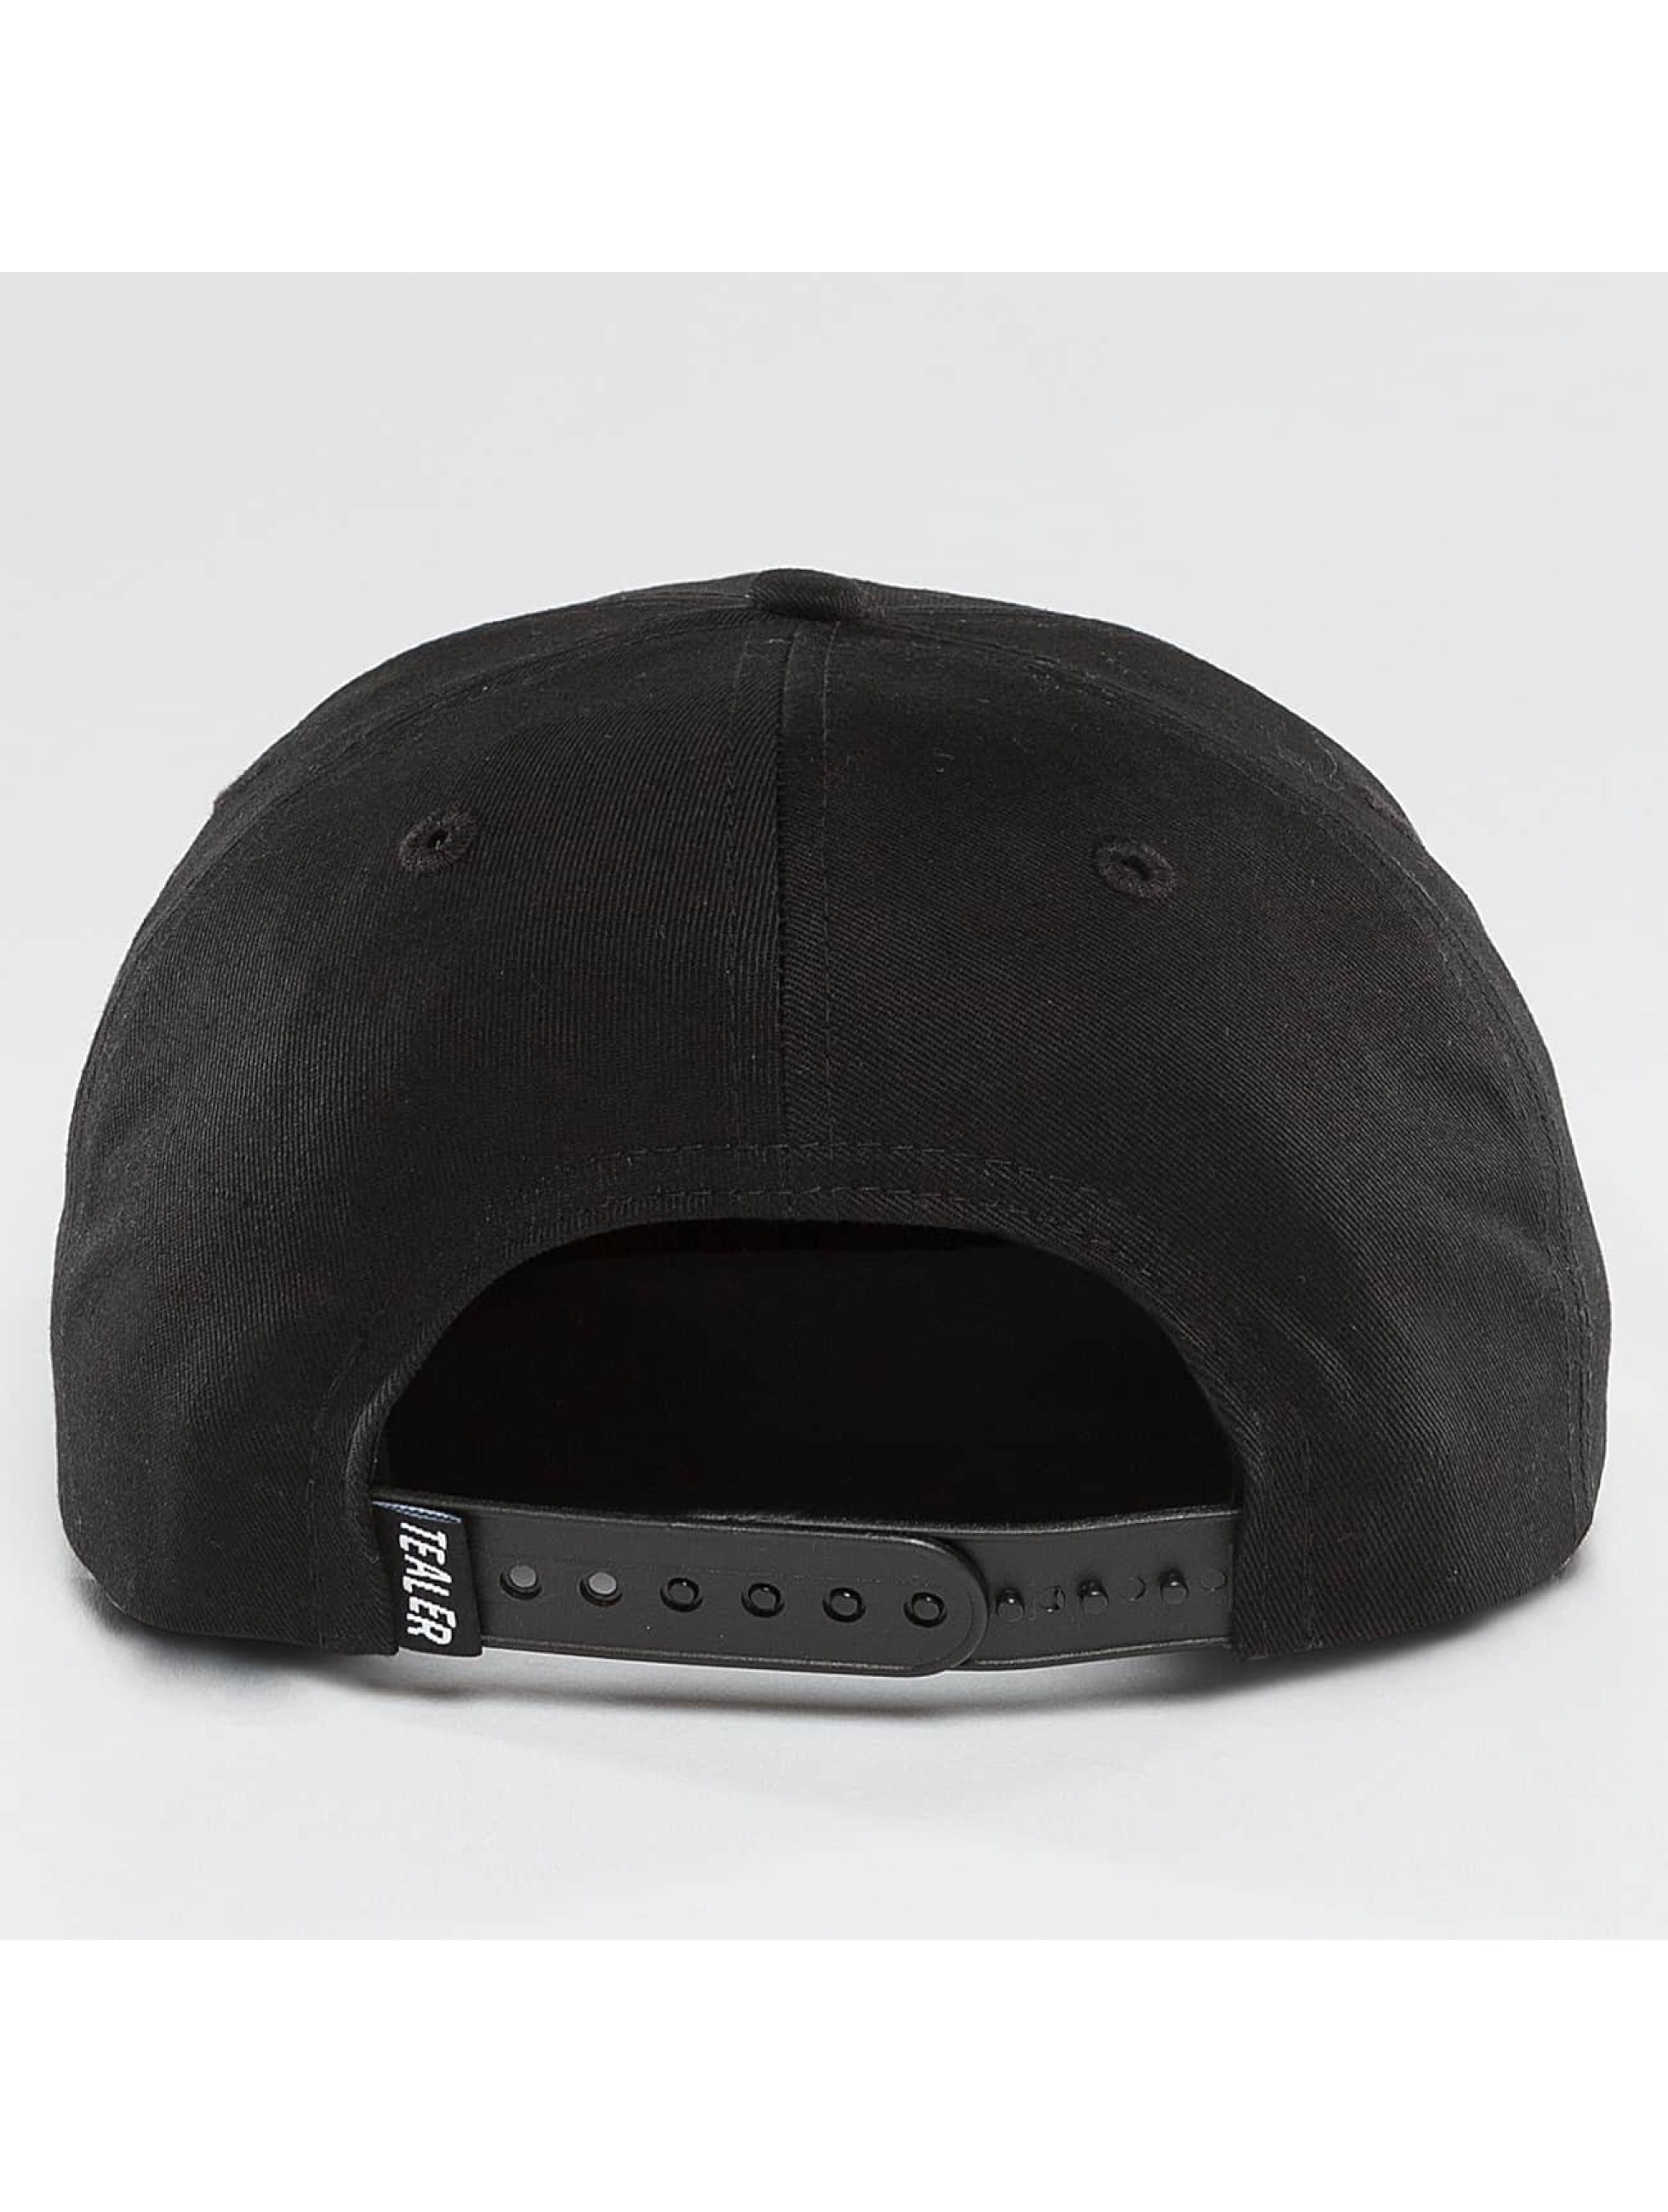 Tealer 5 Panel Cap Independent black